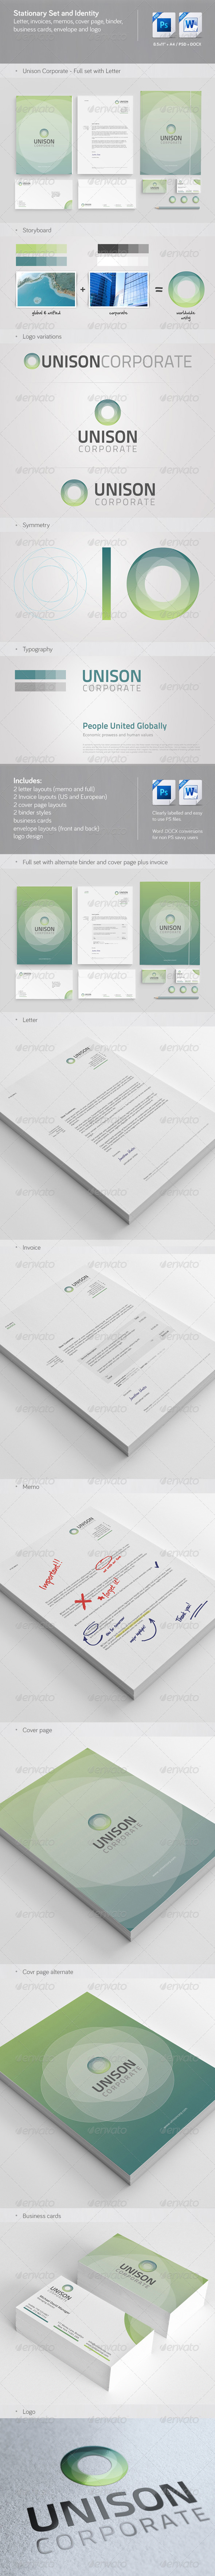 Unison: Corporate Stationary, Invoice and Identity - Stationery Print Templates